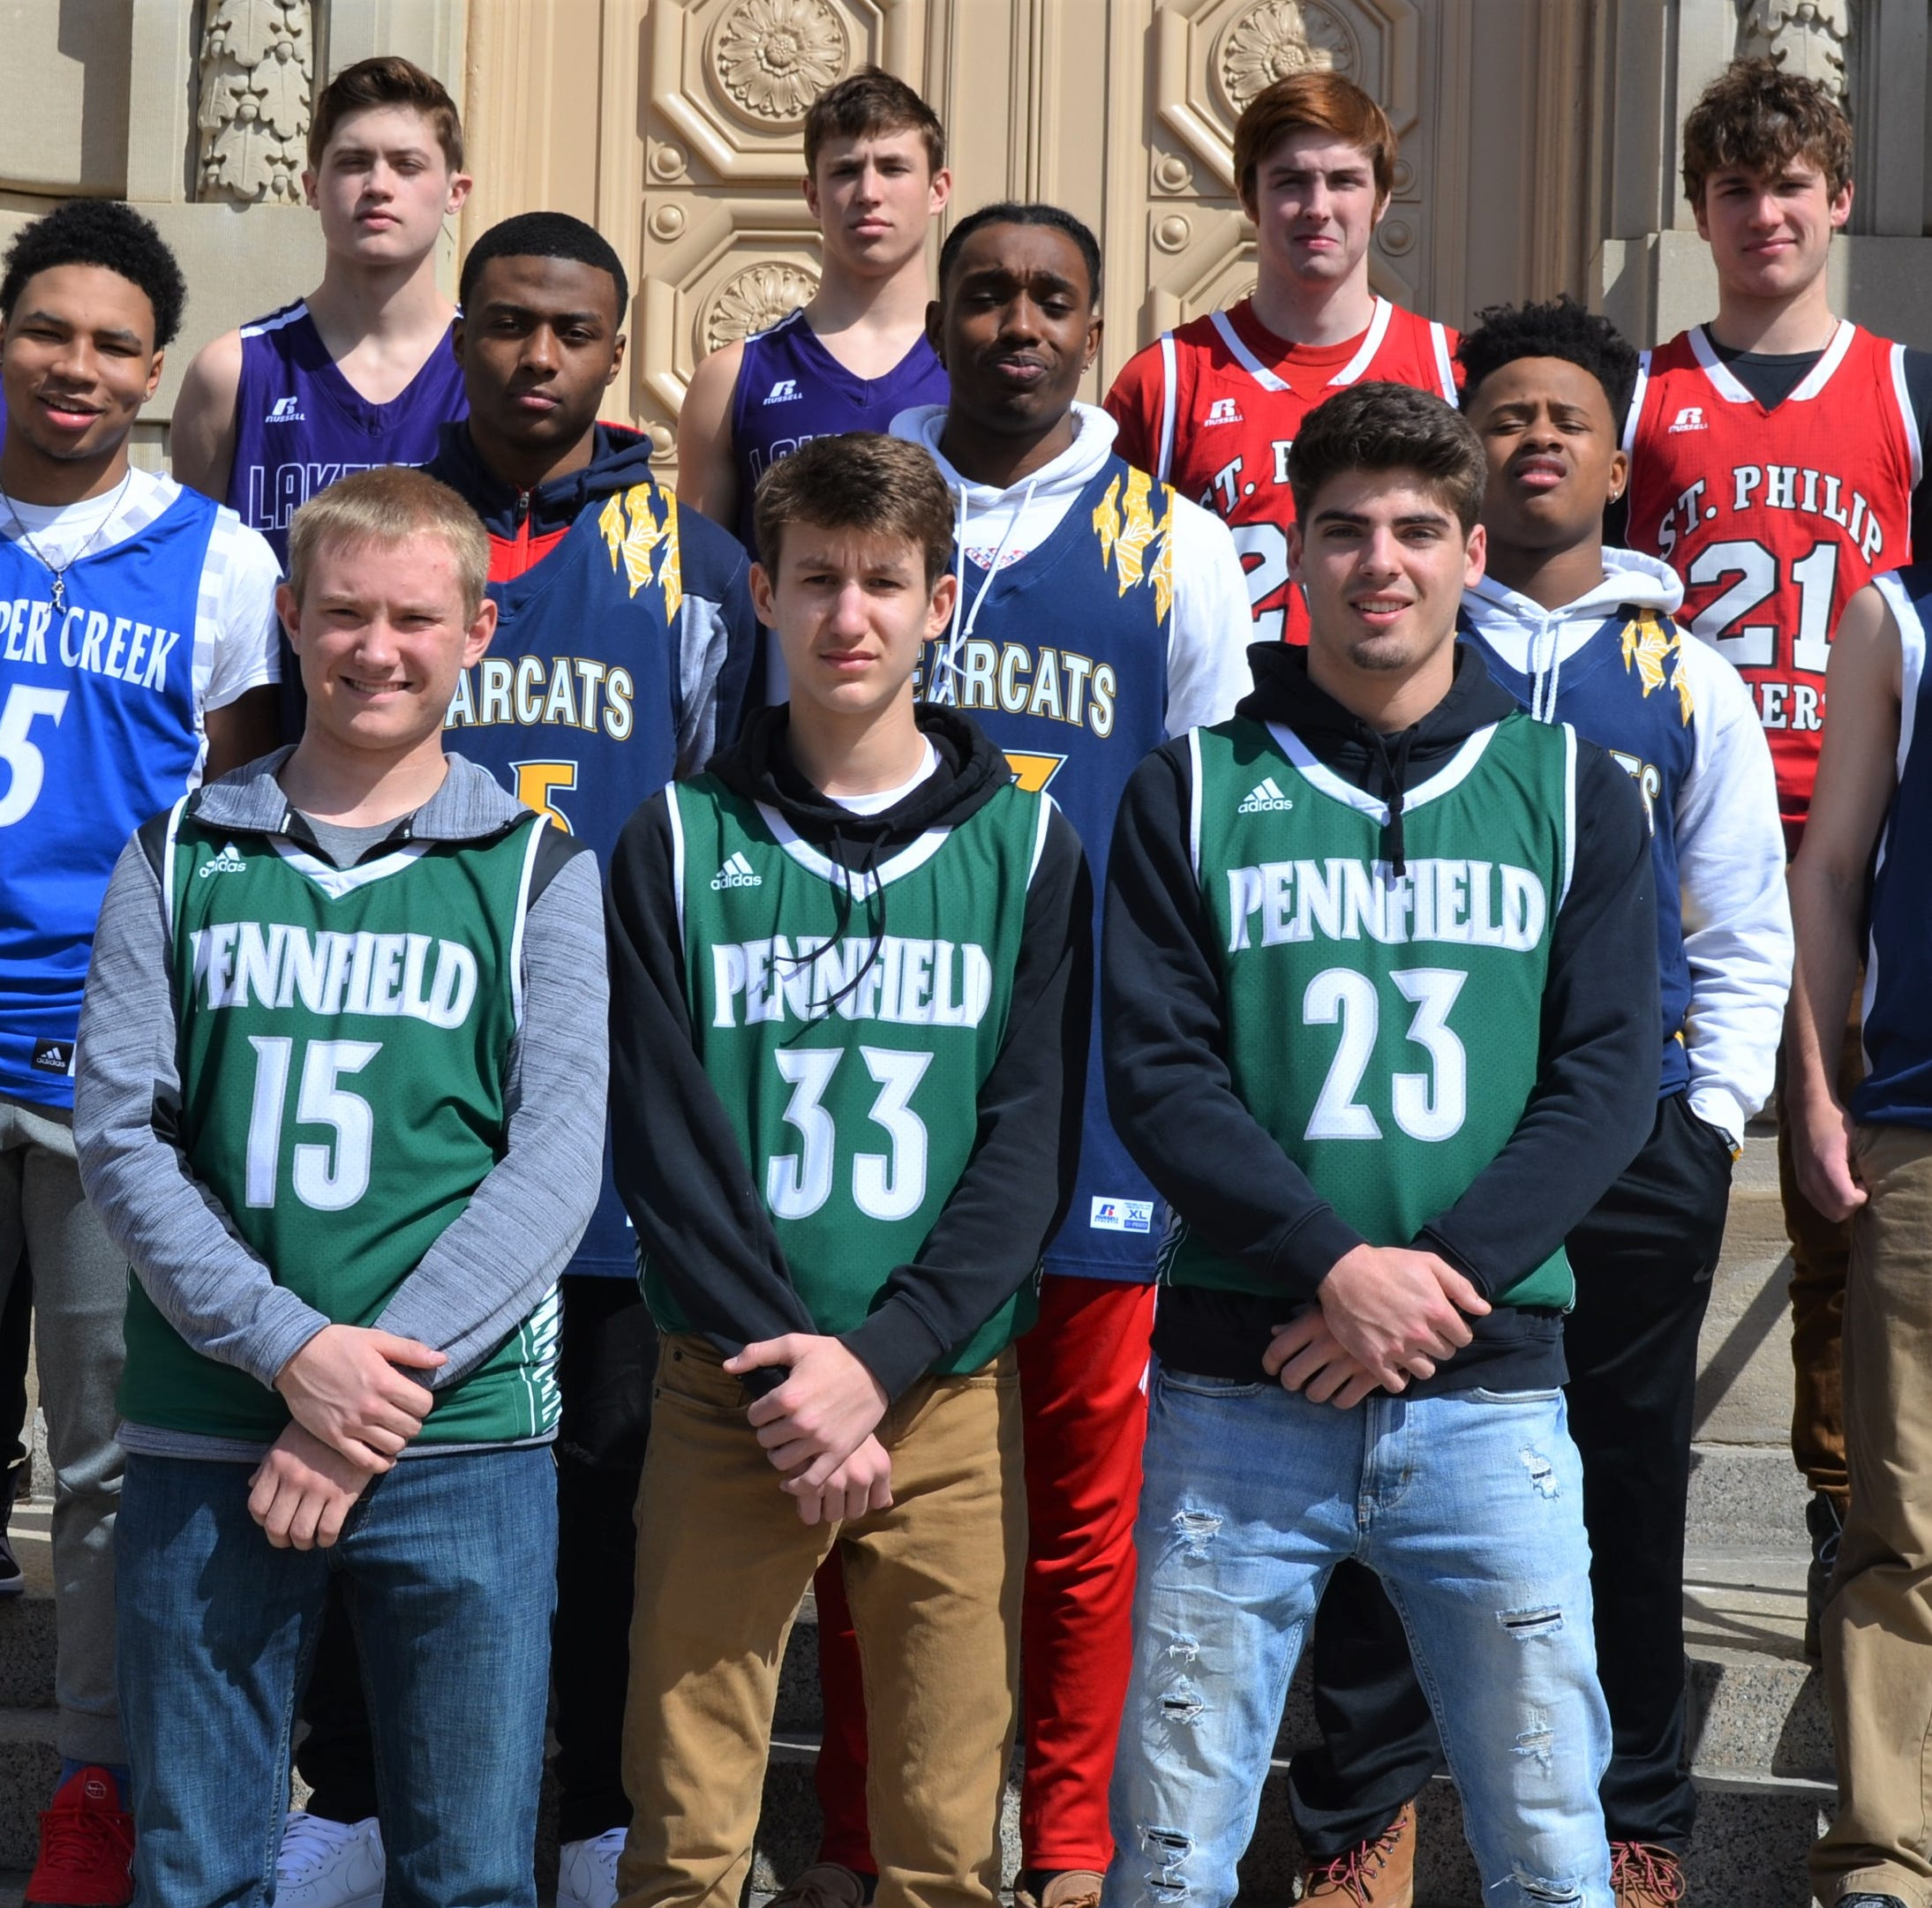 Pennfield's Nate Burns named Enquirer All-City Boys Basketball Coach of the Year